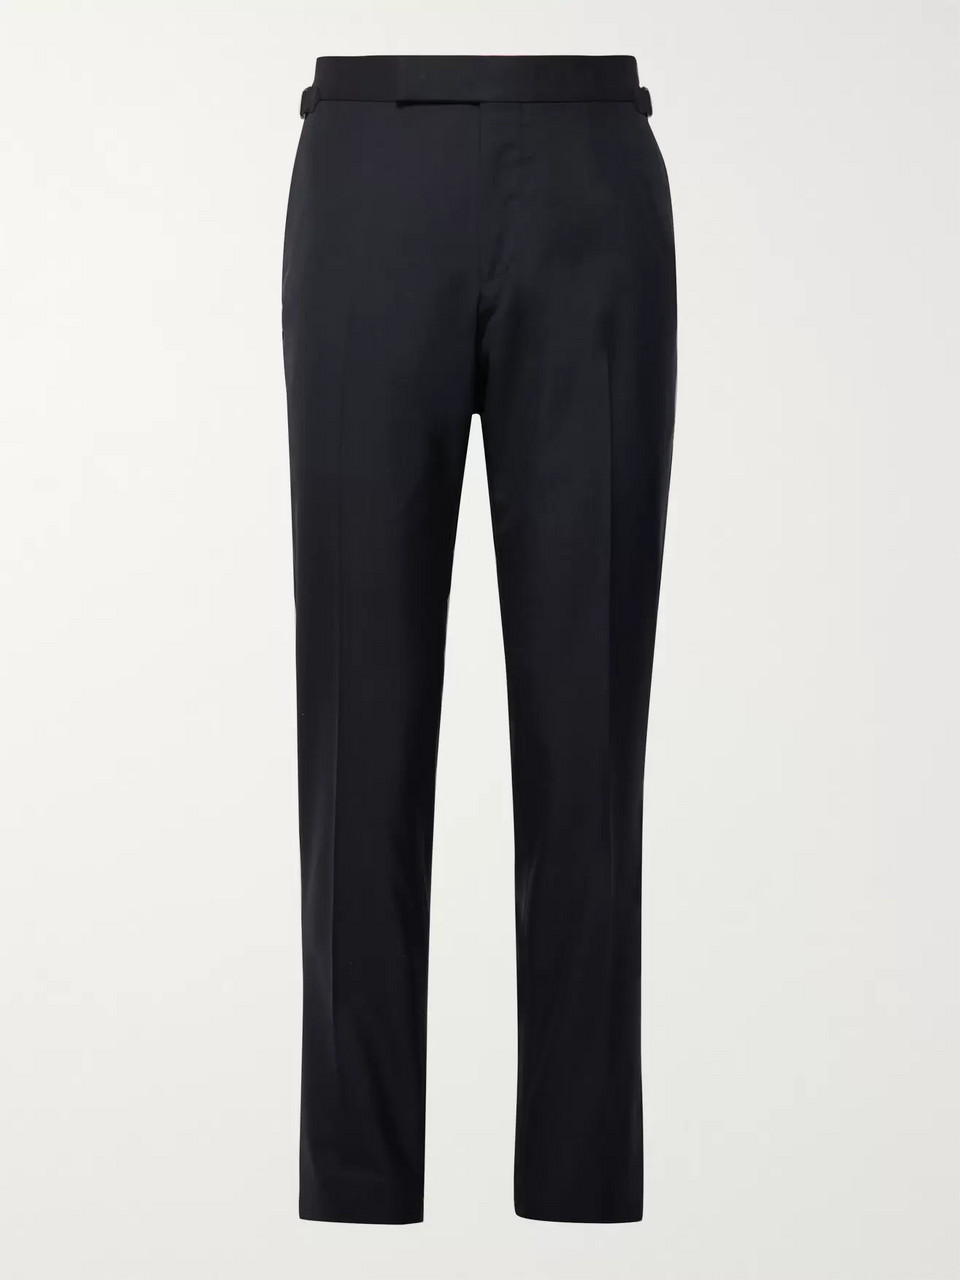 TOM FORD Navy O'Connor Slim-Fit Wool Suit Trousers